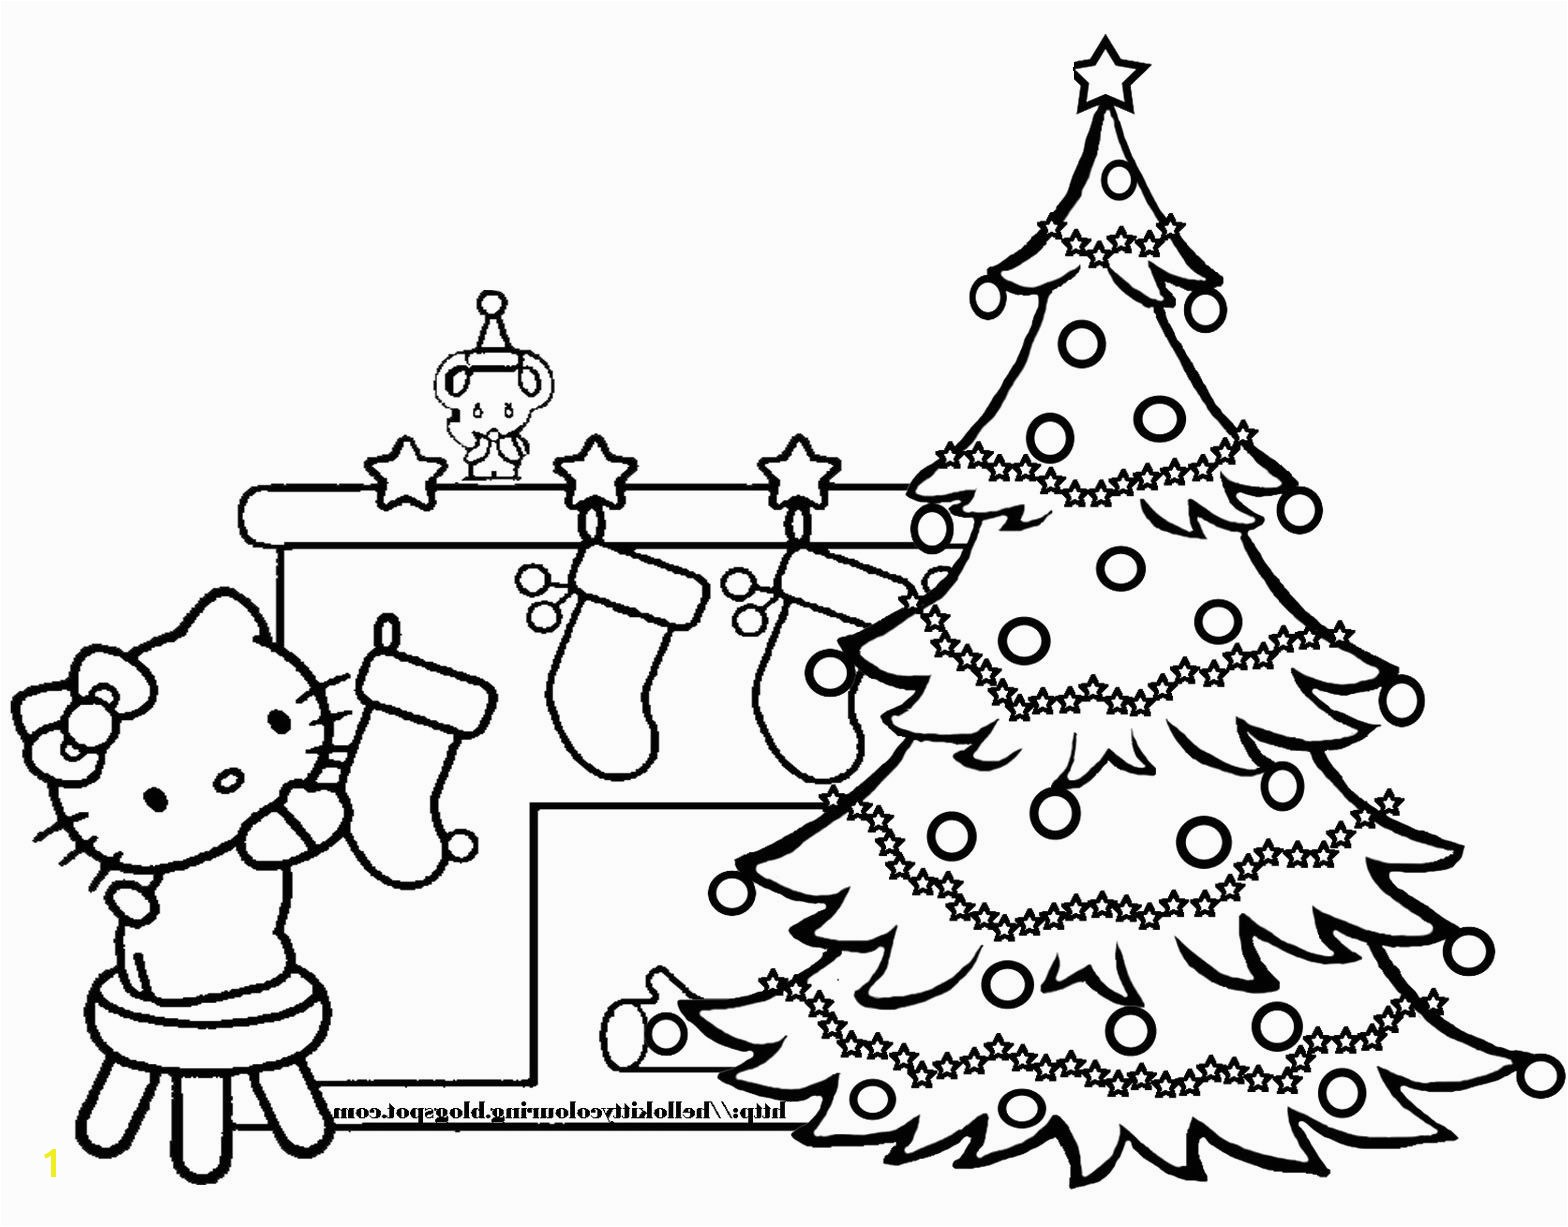 Kitty Cat Christmas Coloring Pages Kitty Cat Christmas Coloring Pages